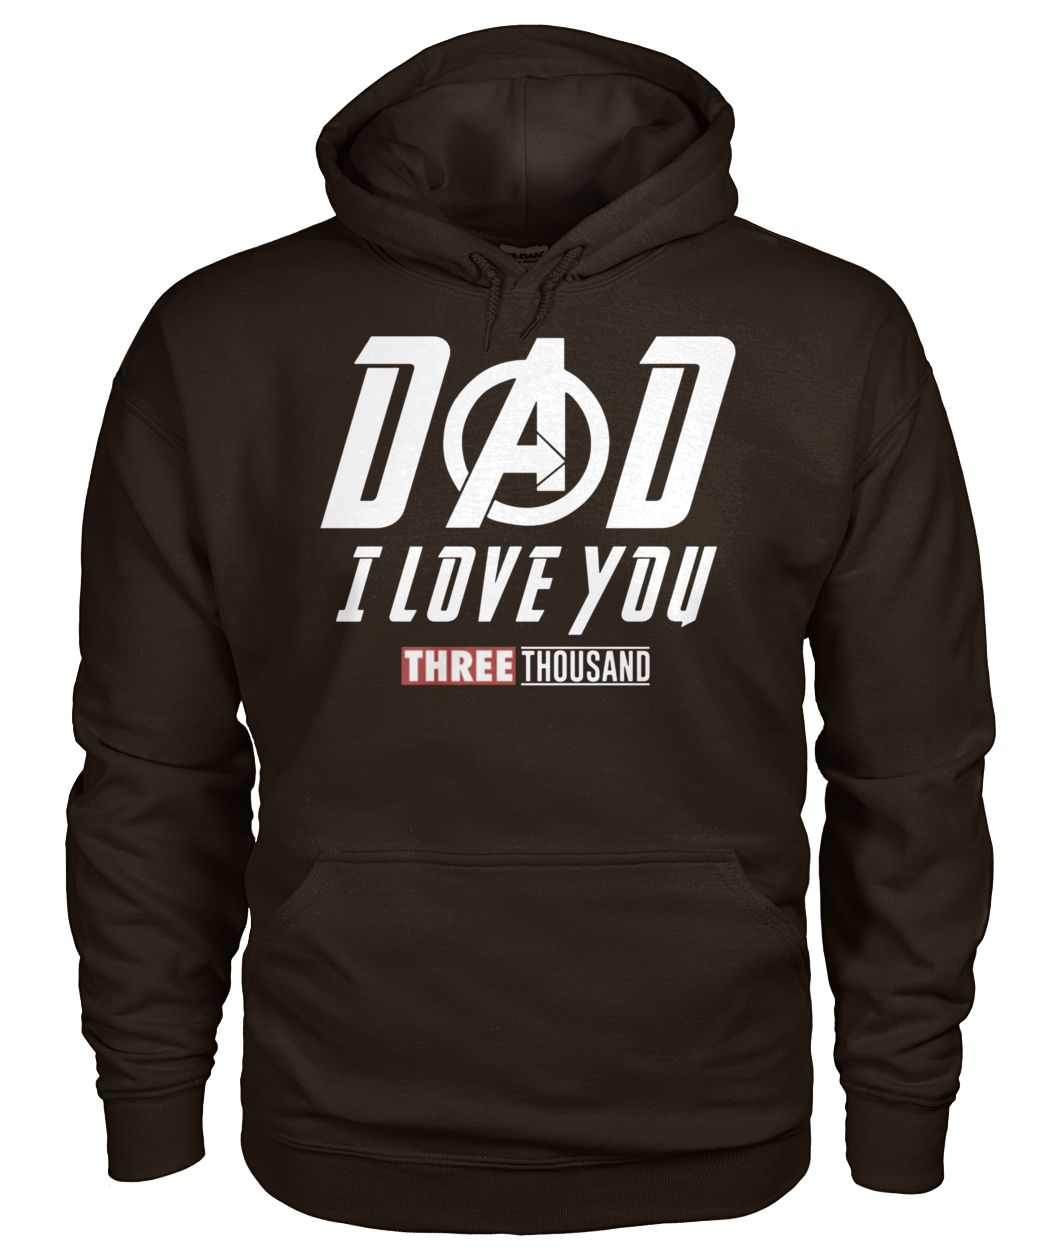 Endgame dad I love you three thousand gildan hoodie